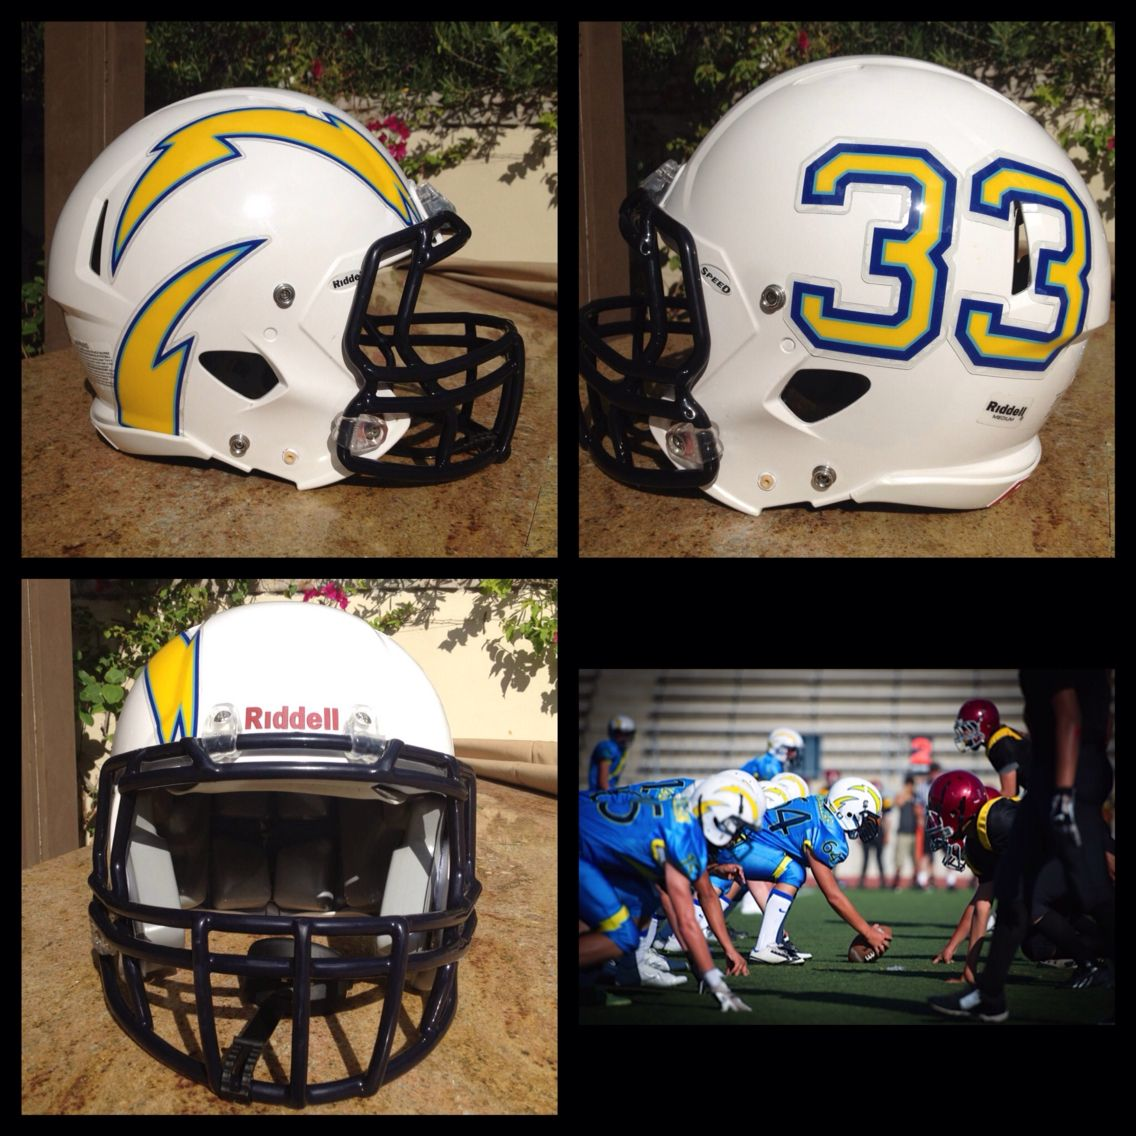 Check out the football helmet decals we created for the